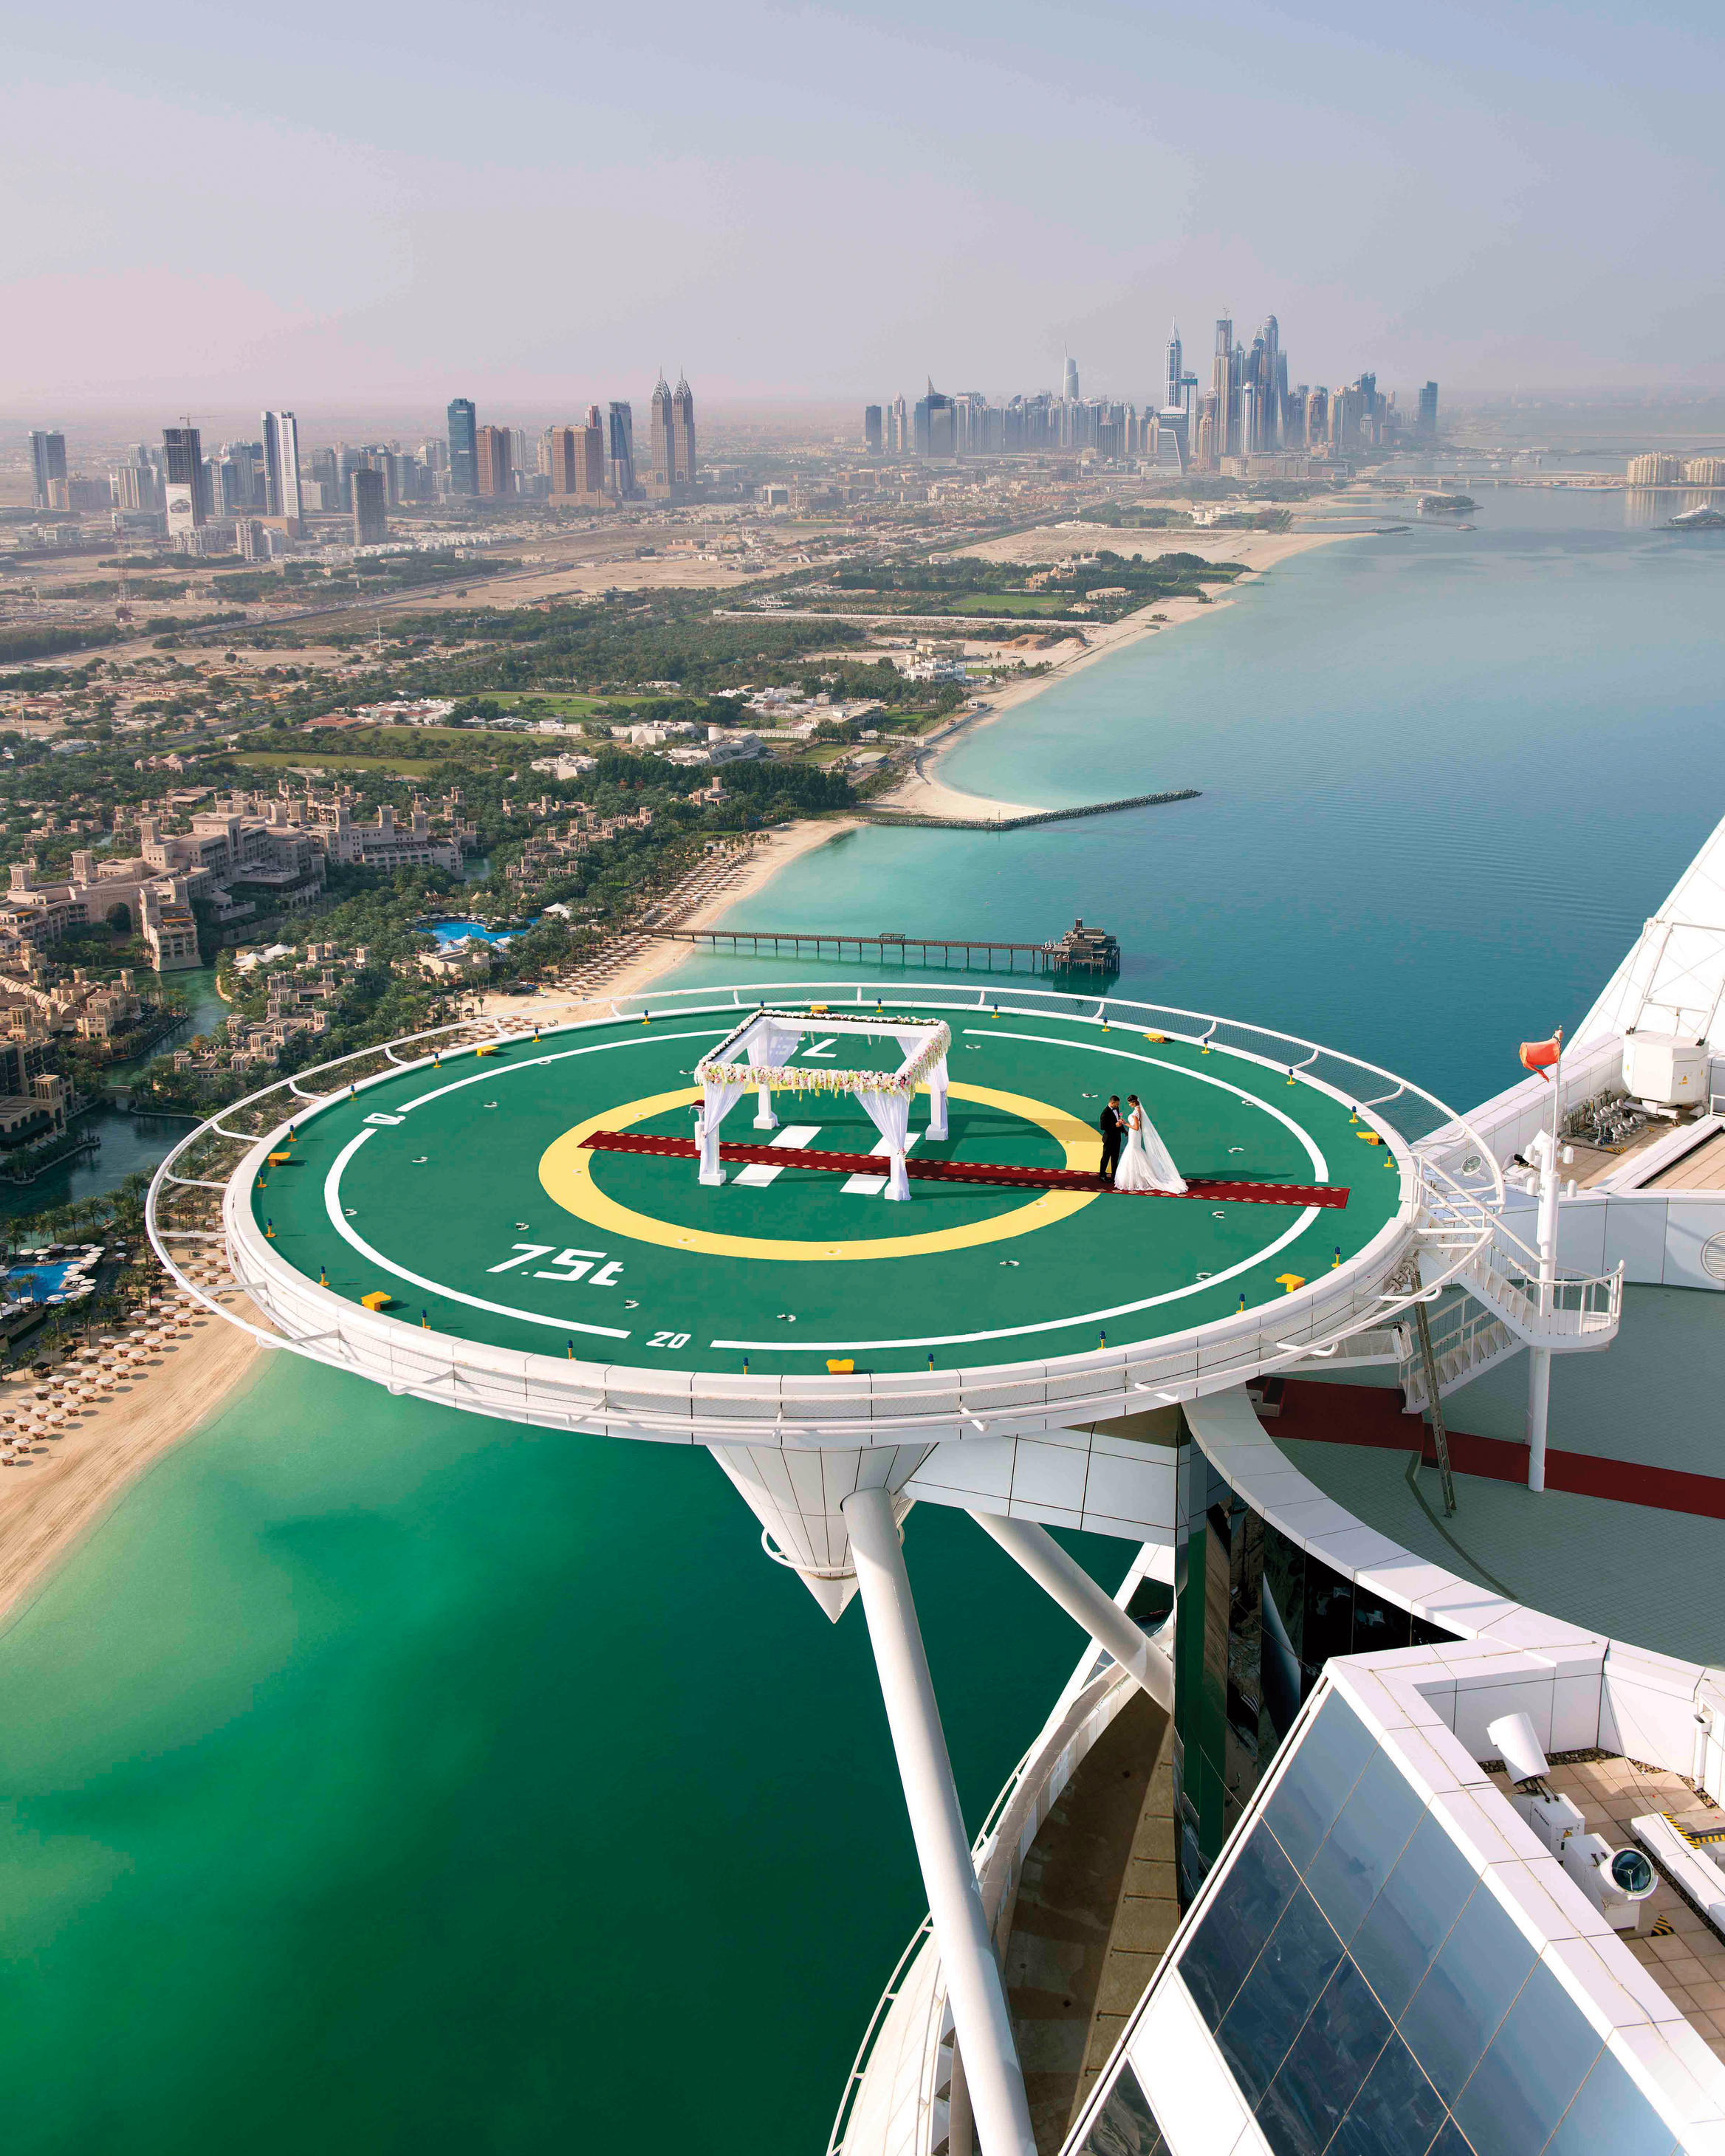 adventurous-ways-to-marry-burj-al-arab-wedding-in-the-skies-1215.jpg